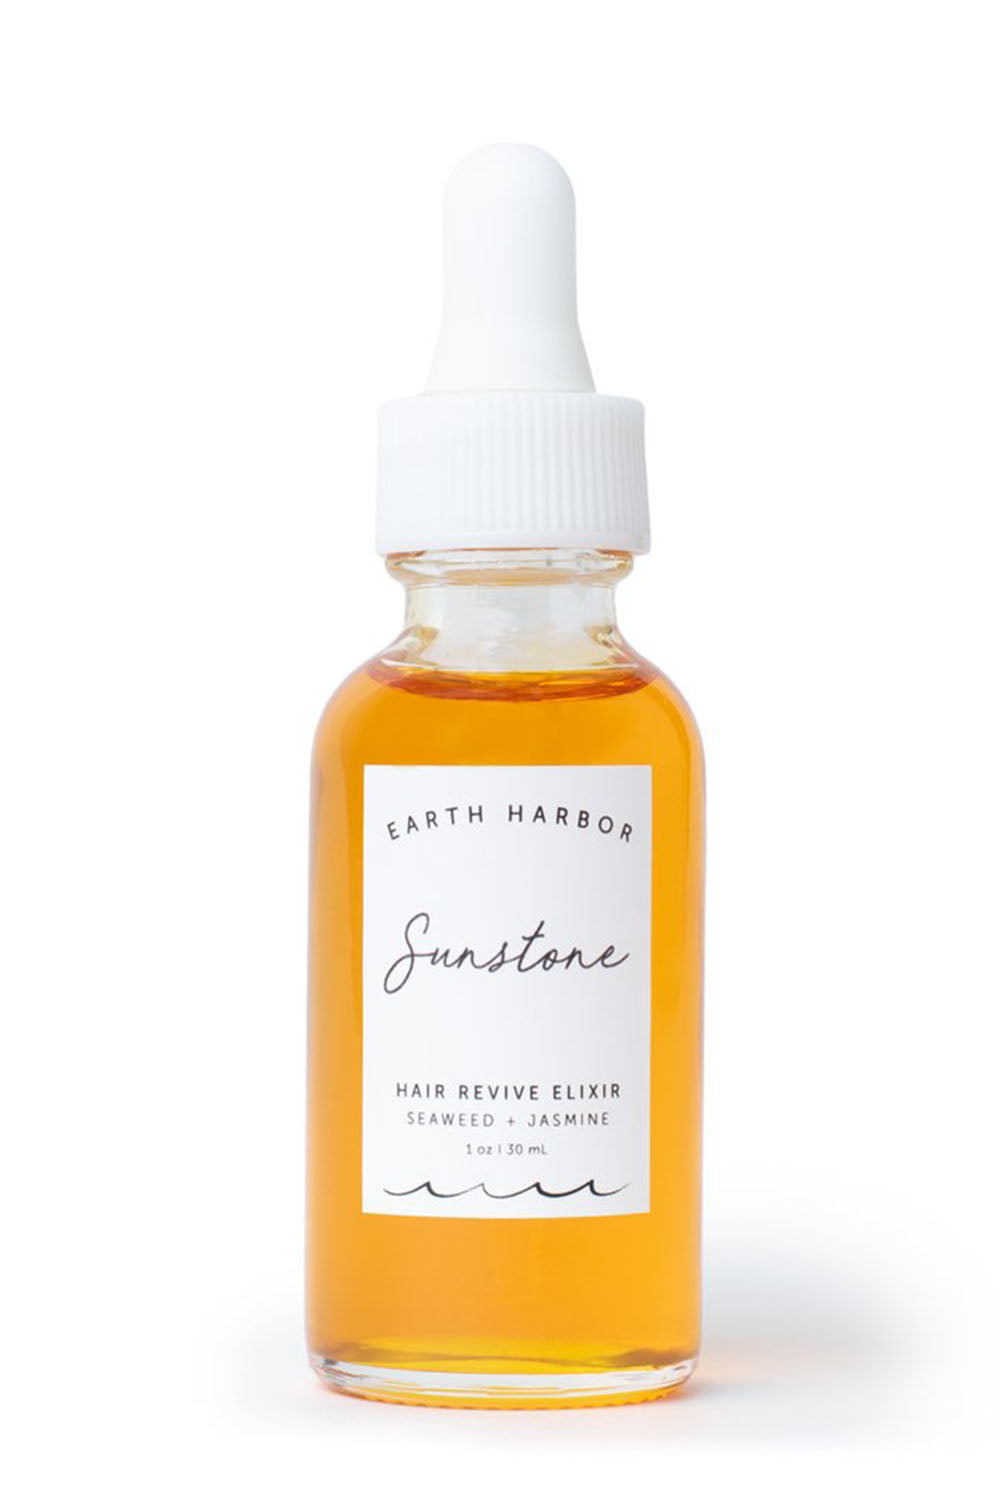 Sunstone Hair Revive Elixer